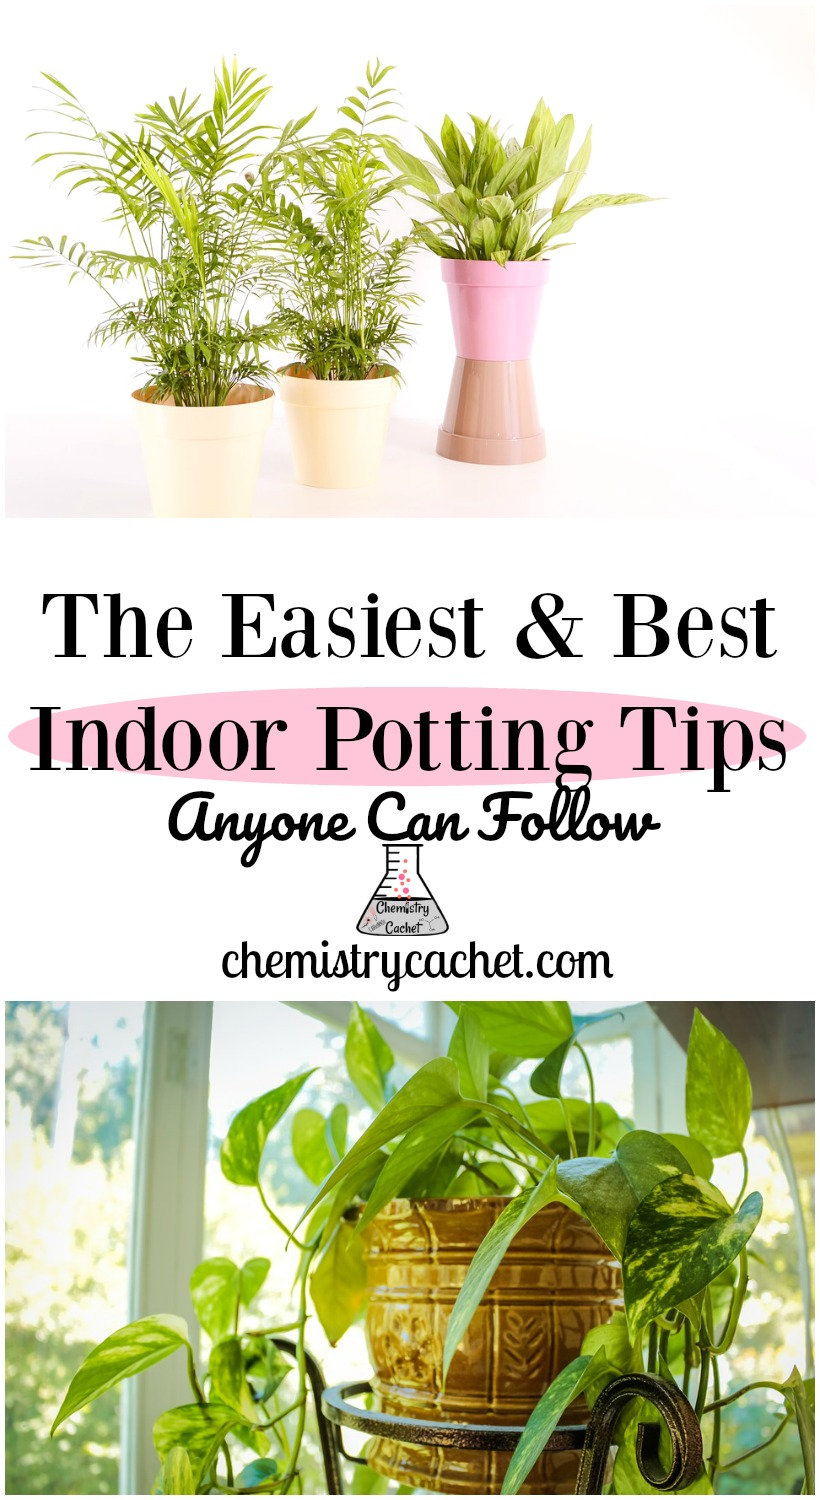 The Easiest & Best Indoor Potting Tips Anyone Can Follow! How to pot, plus easy tips for keeping plants alive on chemistrycachet.com #indoorpotting #houseplants